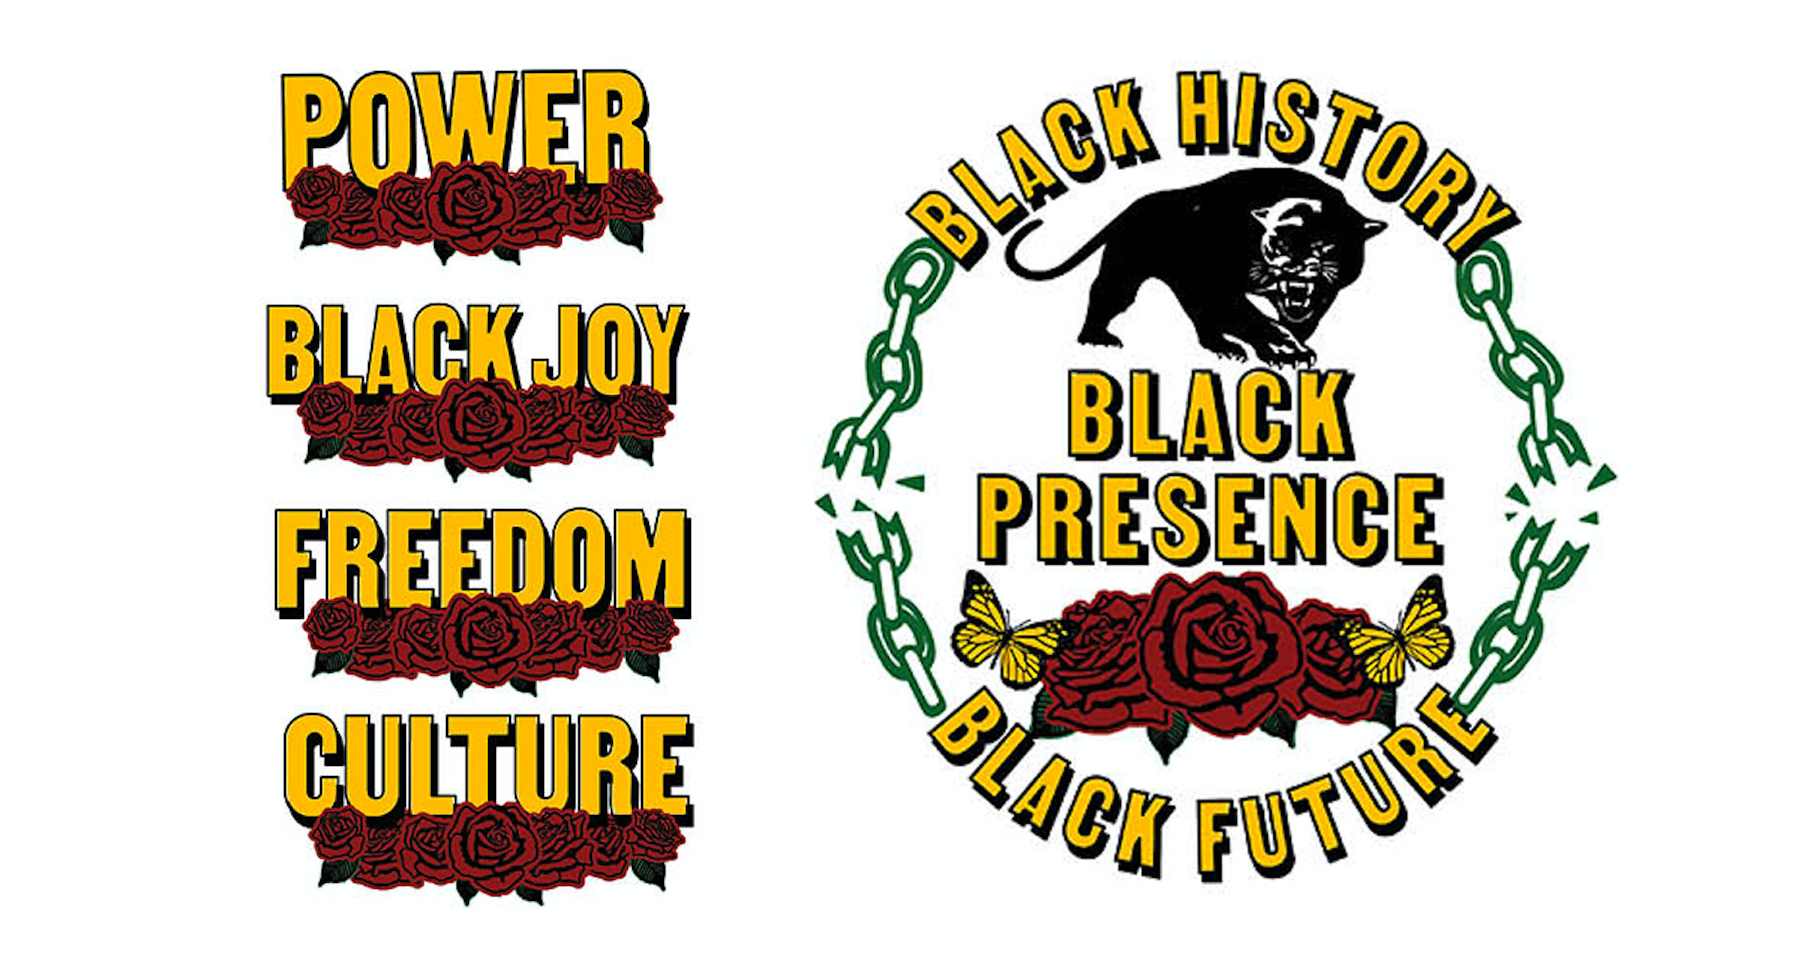 Brand Levi's Beauty of Becoming marketing campaign FrescoSteez clothing design with graphics supporting Black Lives Matter